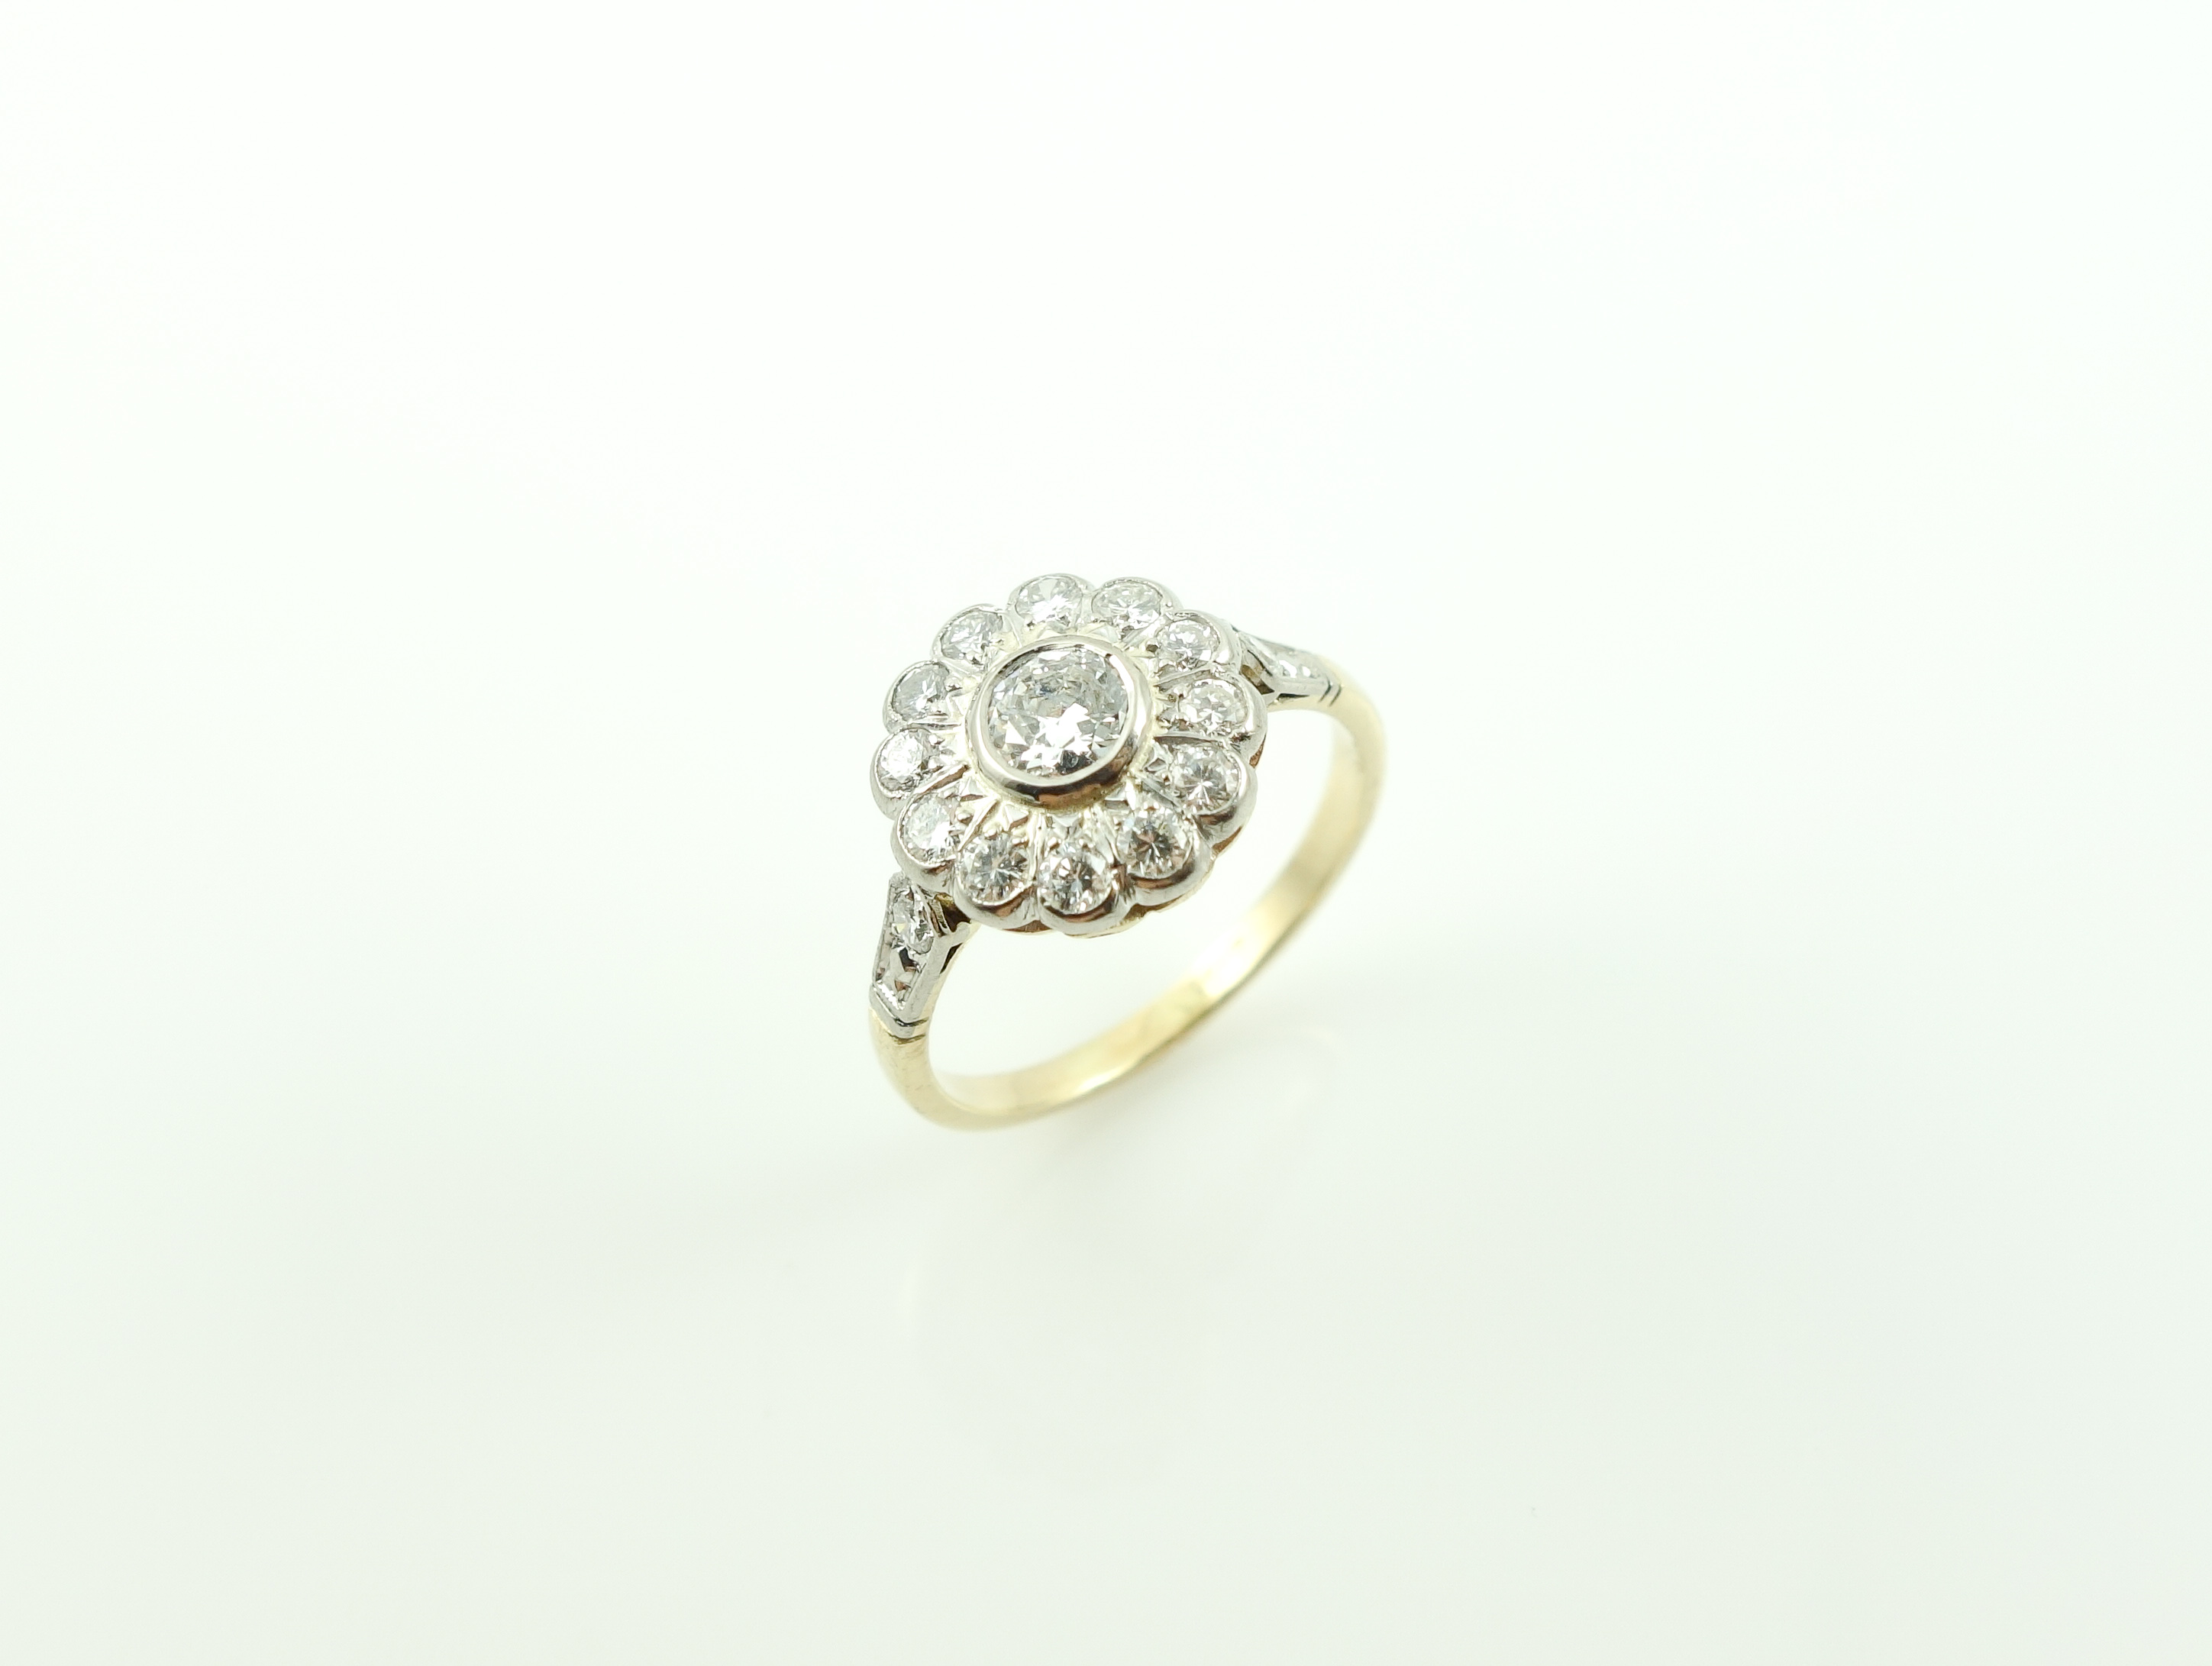 Ring - 18ct yellow and white gold diamond cluster 0.60ct